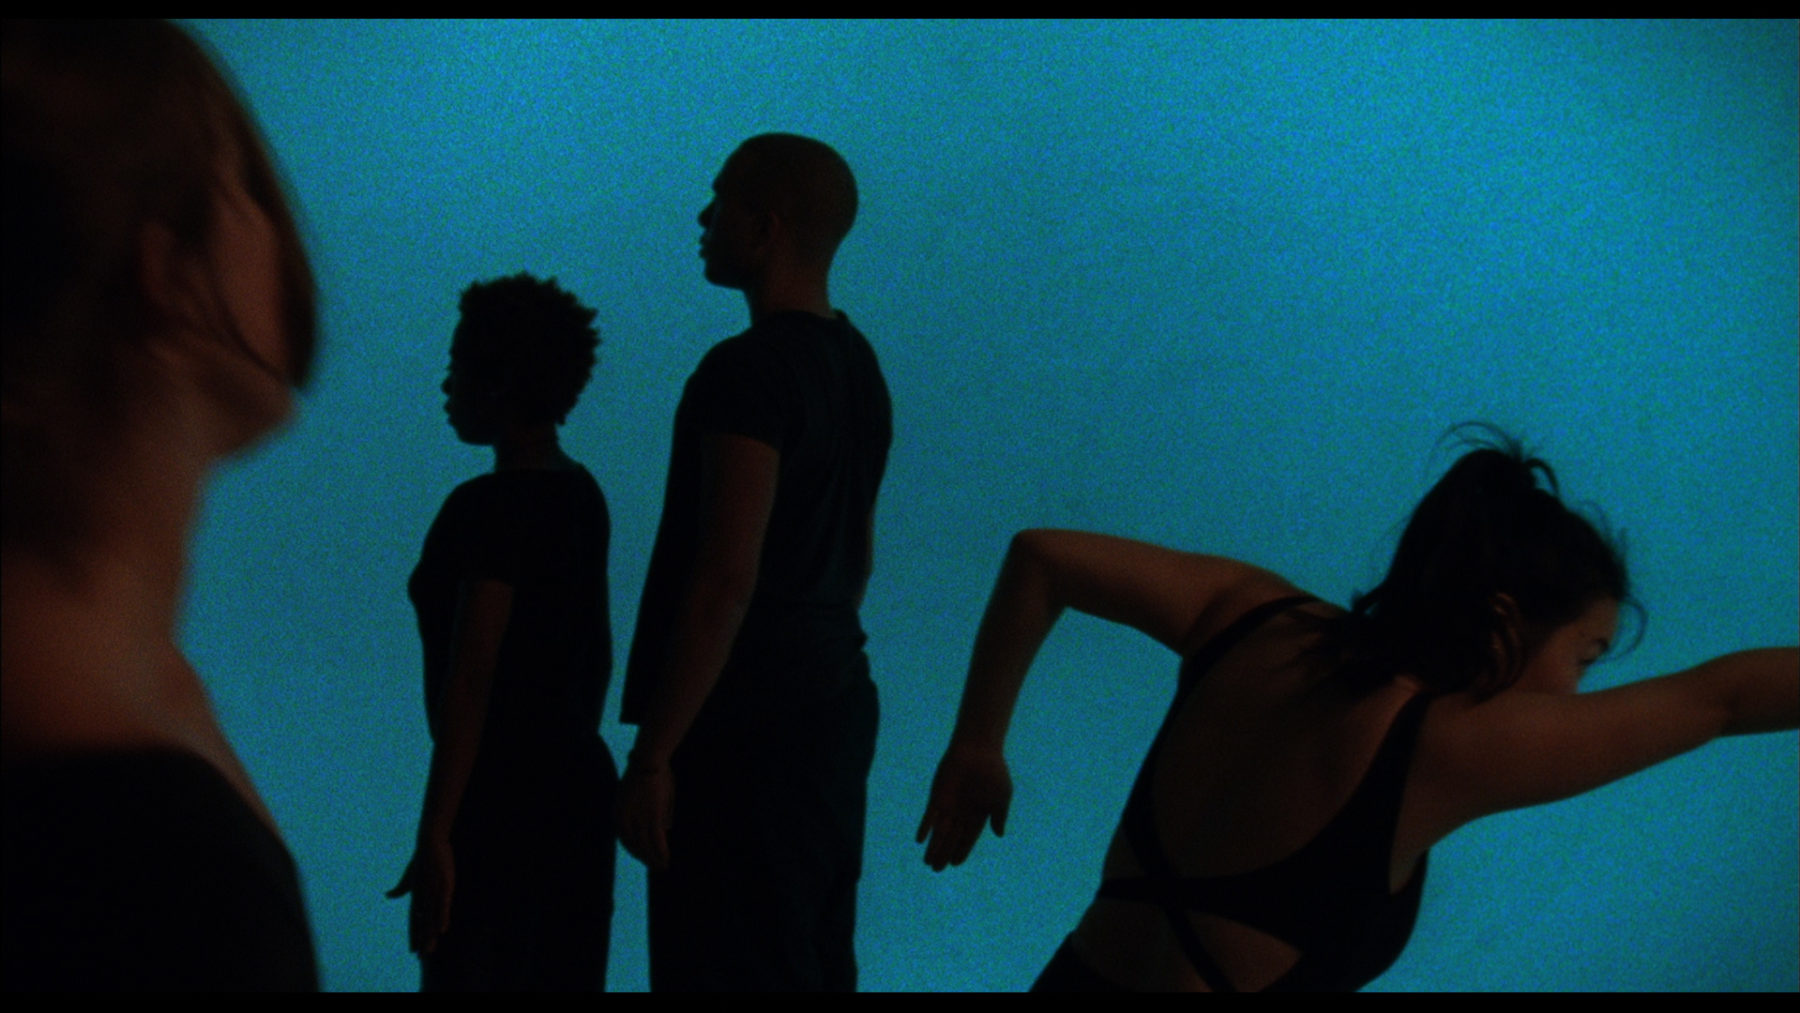 Jesse Jones, The Struggle Against Ourselves (2011) 16mm film still, courtesy the artist